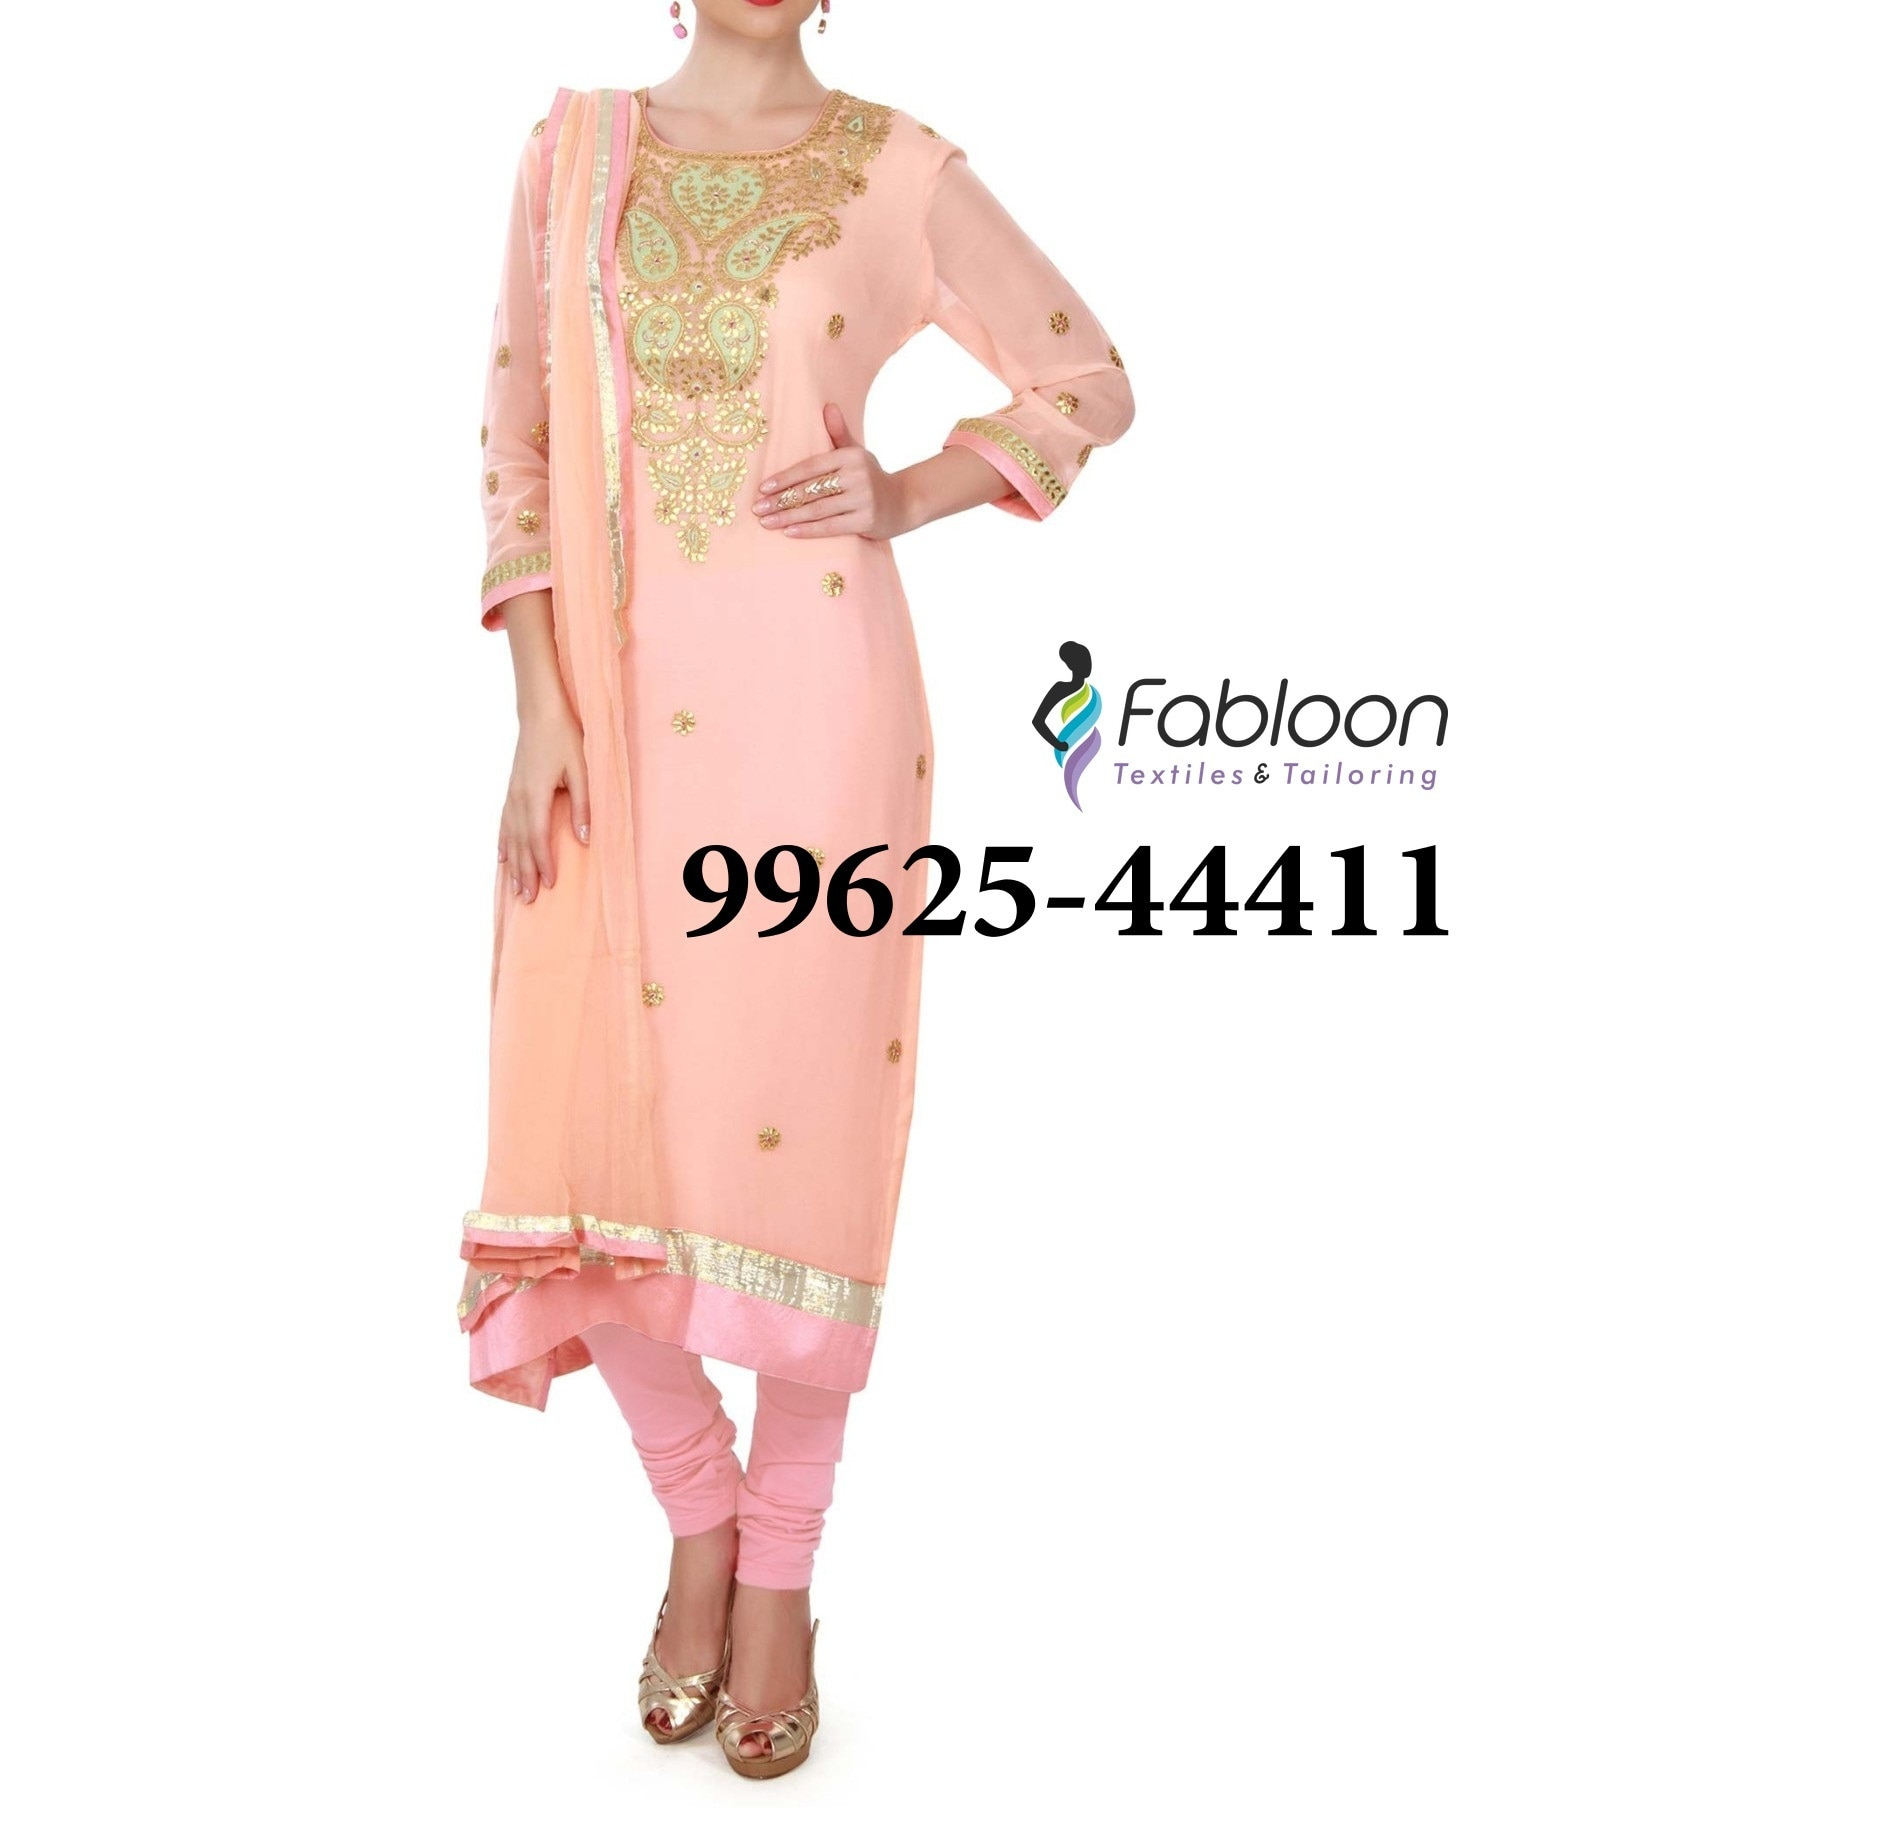 Baby Pink Colour Elbow Length Sleeve Round Neckline Designer Salwar Kamees At Fabloon Fashion Boutique And Designer Tailoring In Vadapalani, Mob: +91 9962544411, 044 48644411.  Wedding Blouse Designs In Vadapalani. Designer Blouse At Kodamabakkam. Blouse Stitching Around North Usman Road. Aari Work Blouse Neck Design Near Trustpuram. Check all updates for more Collections.